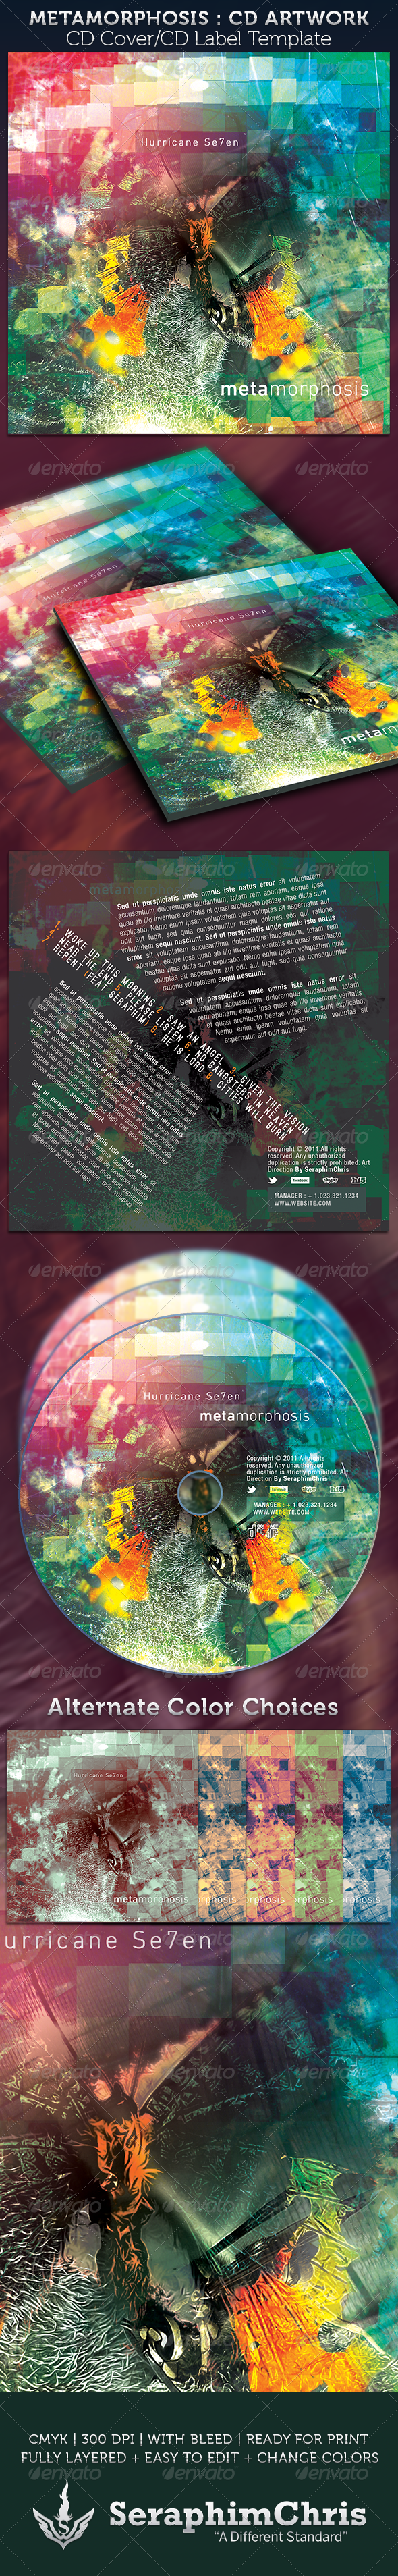 GraphicRiver Metamorphosis CD Cover Artwork Template 3803779